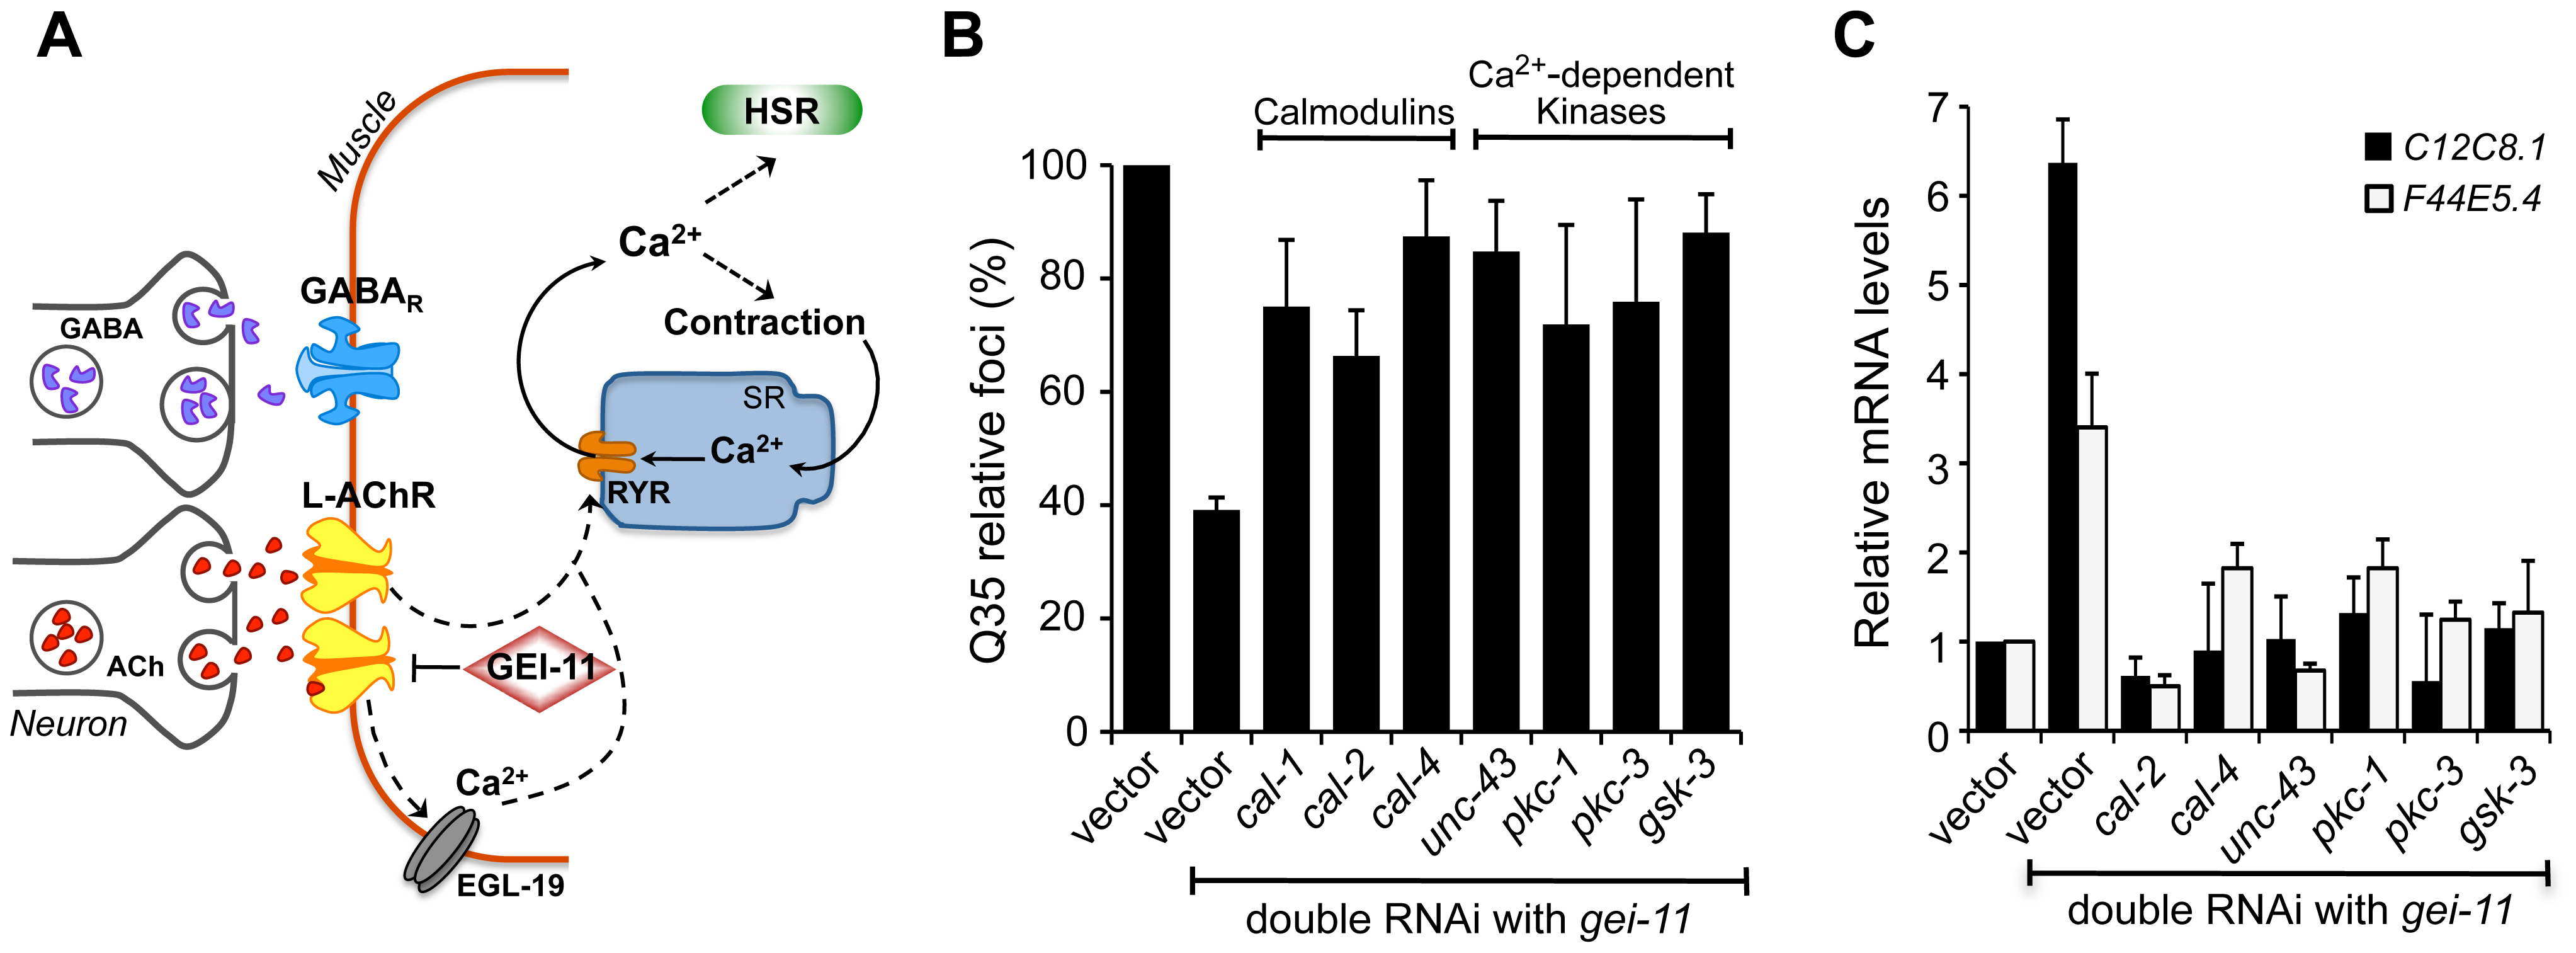 Ca<sup>2+</sup>-dependent kinases required for activation of the HSR and folding enhancement.